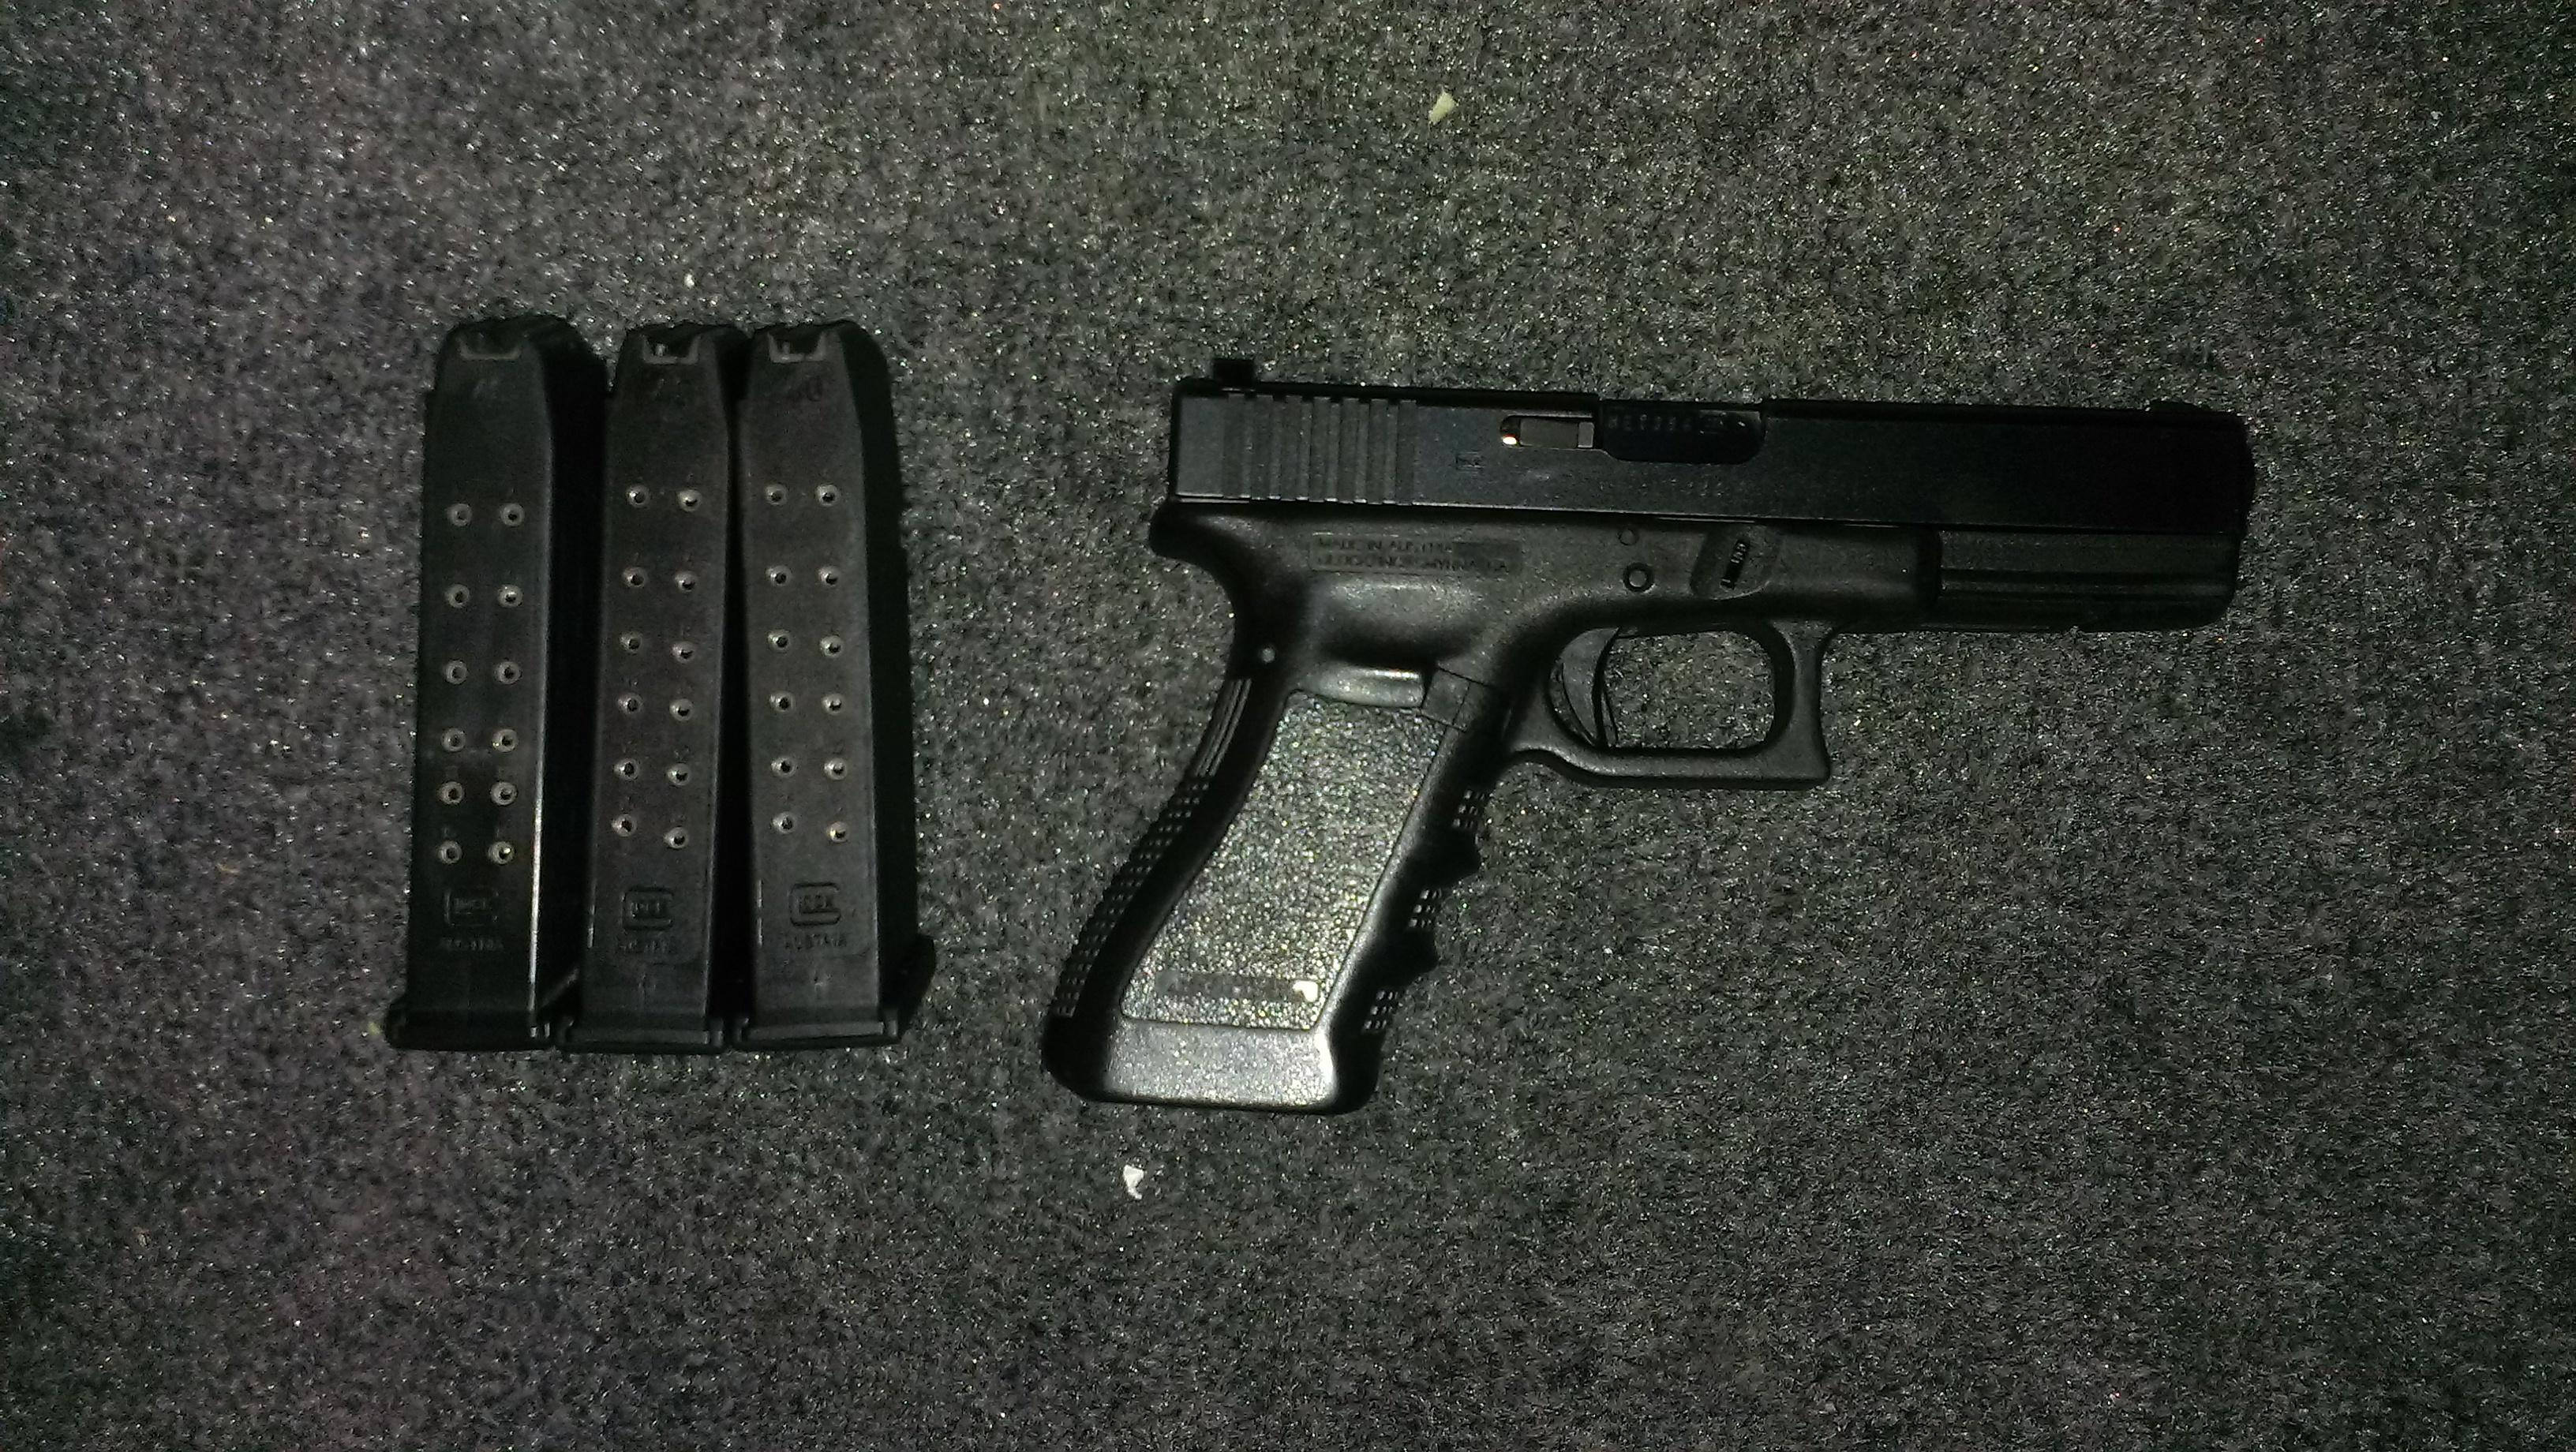 Glock 22 Gen 3 Trijicon night sights 40 S&W  Guns > Pistols > Glock Pistols > 22